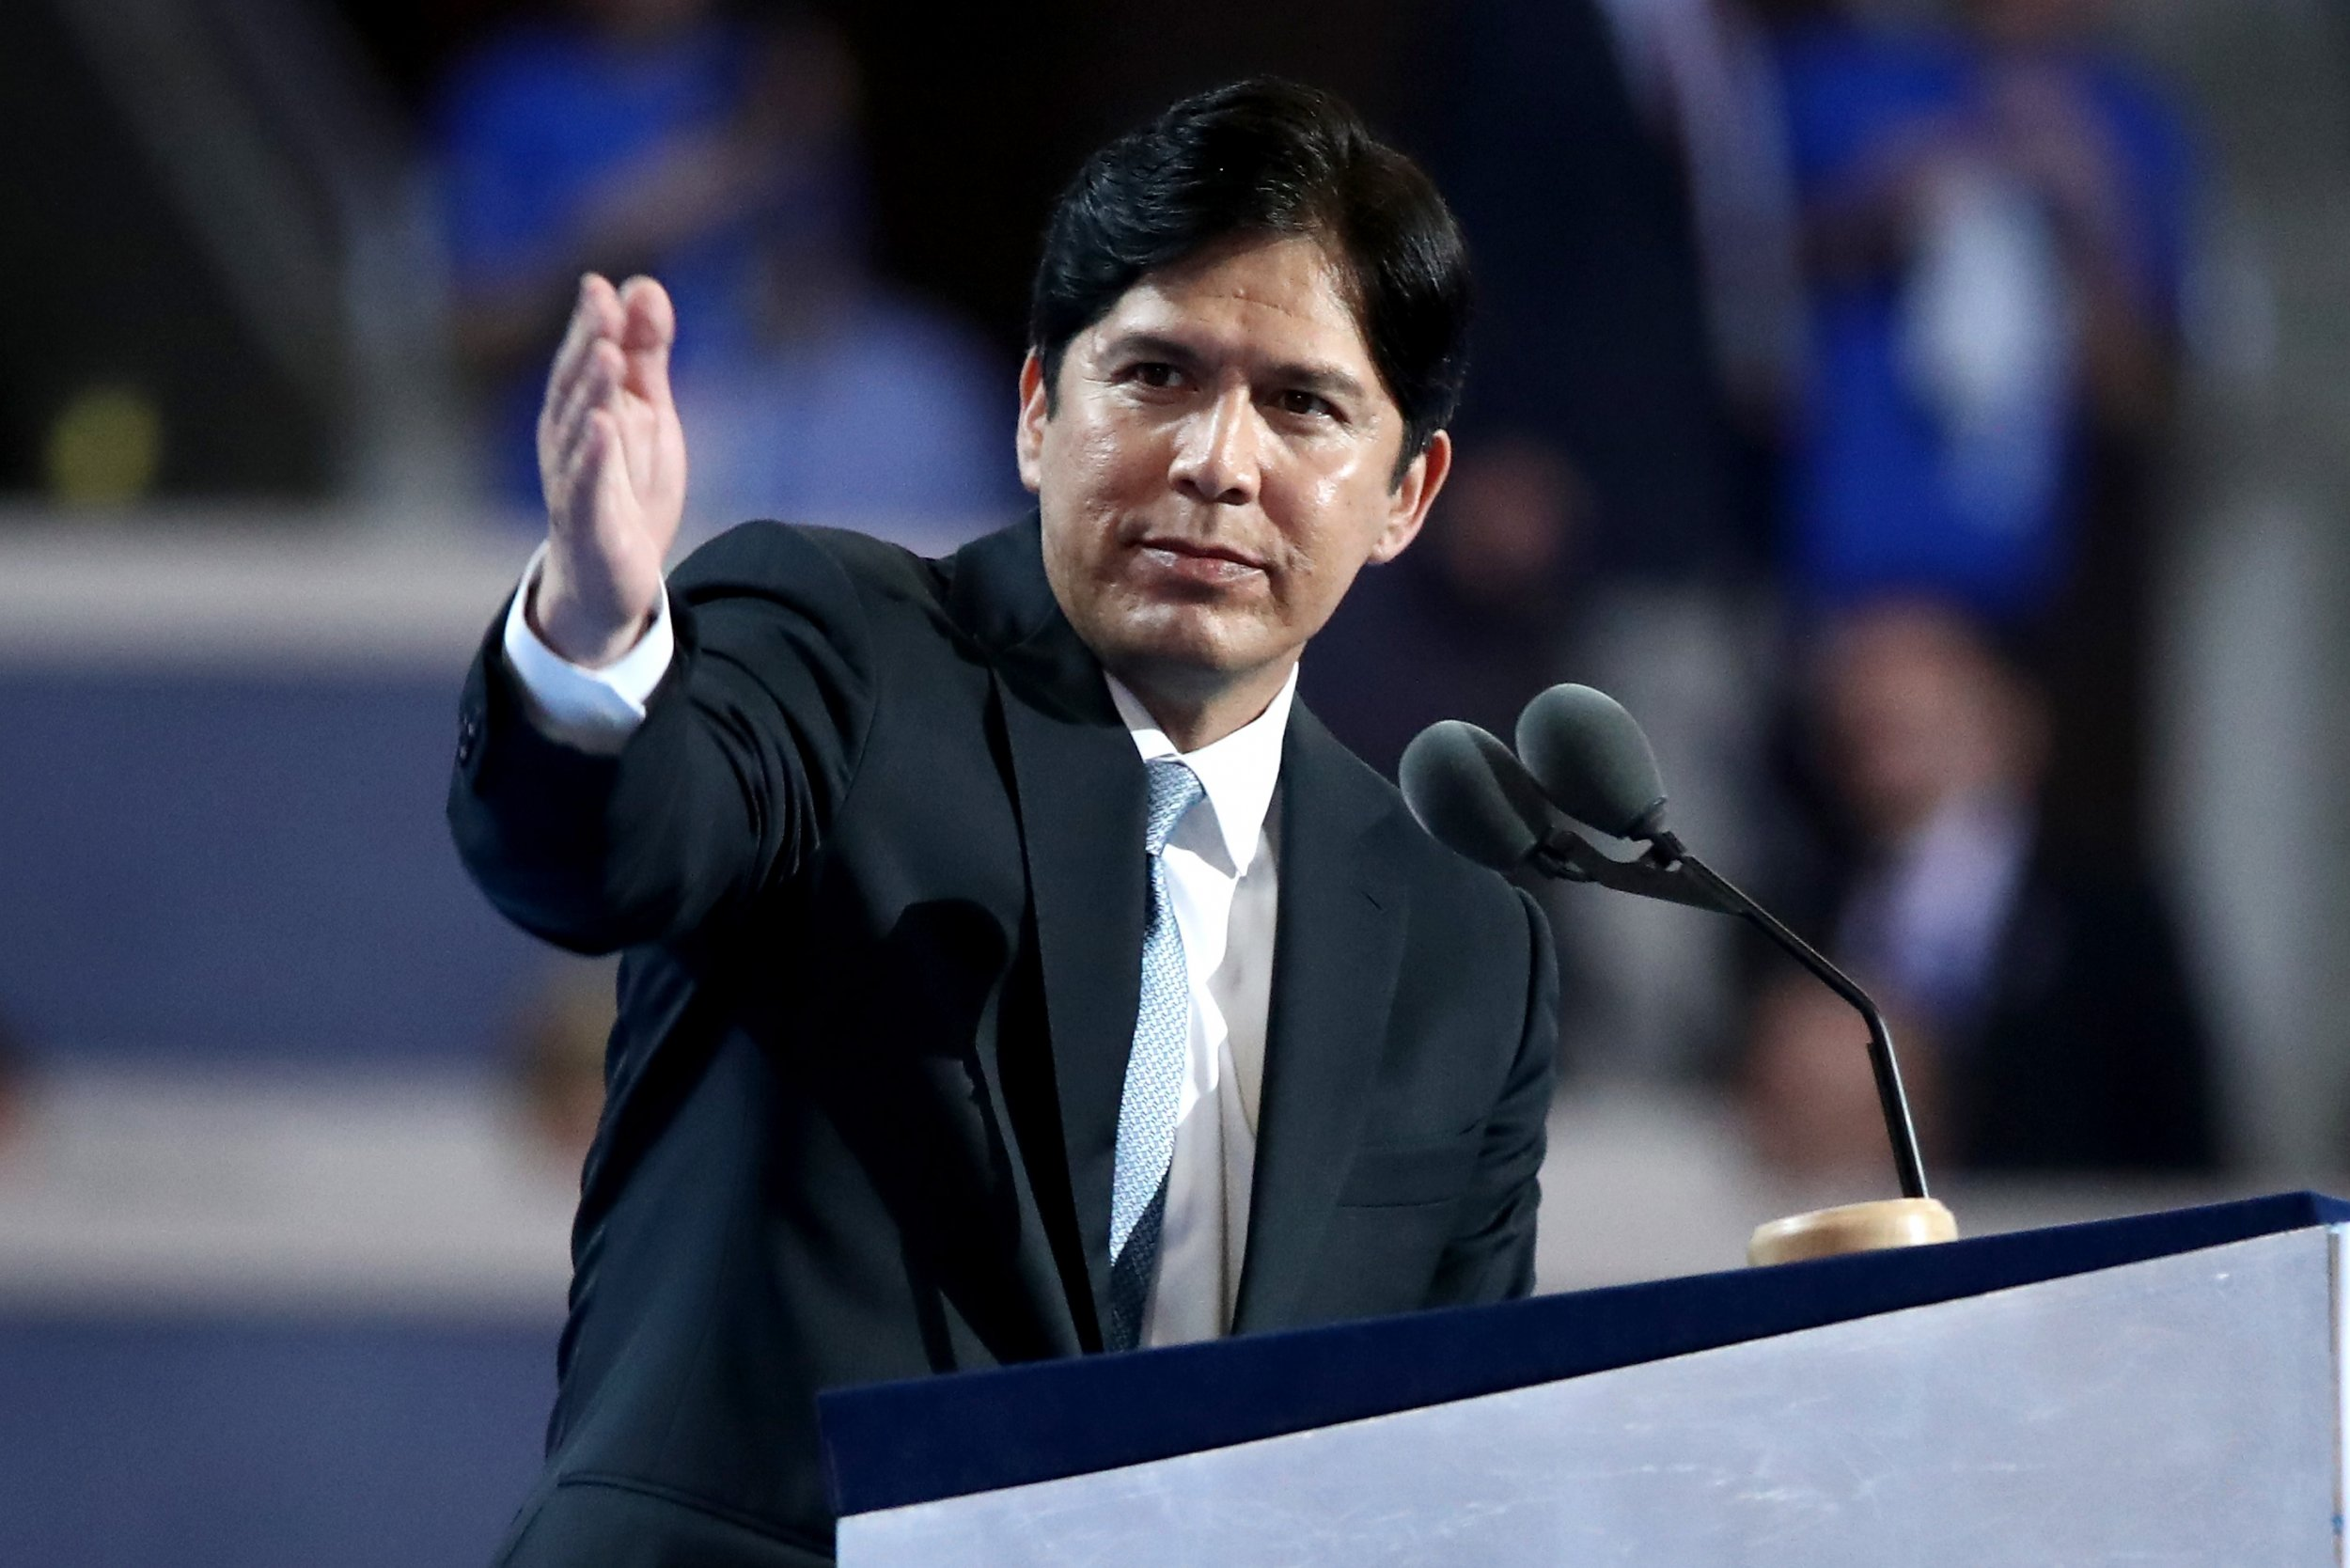 California has appointed an undocumented immigrant to a statewide post for the first time